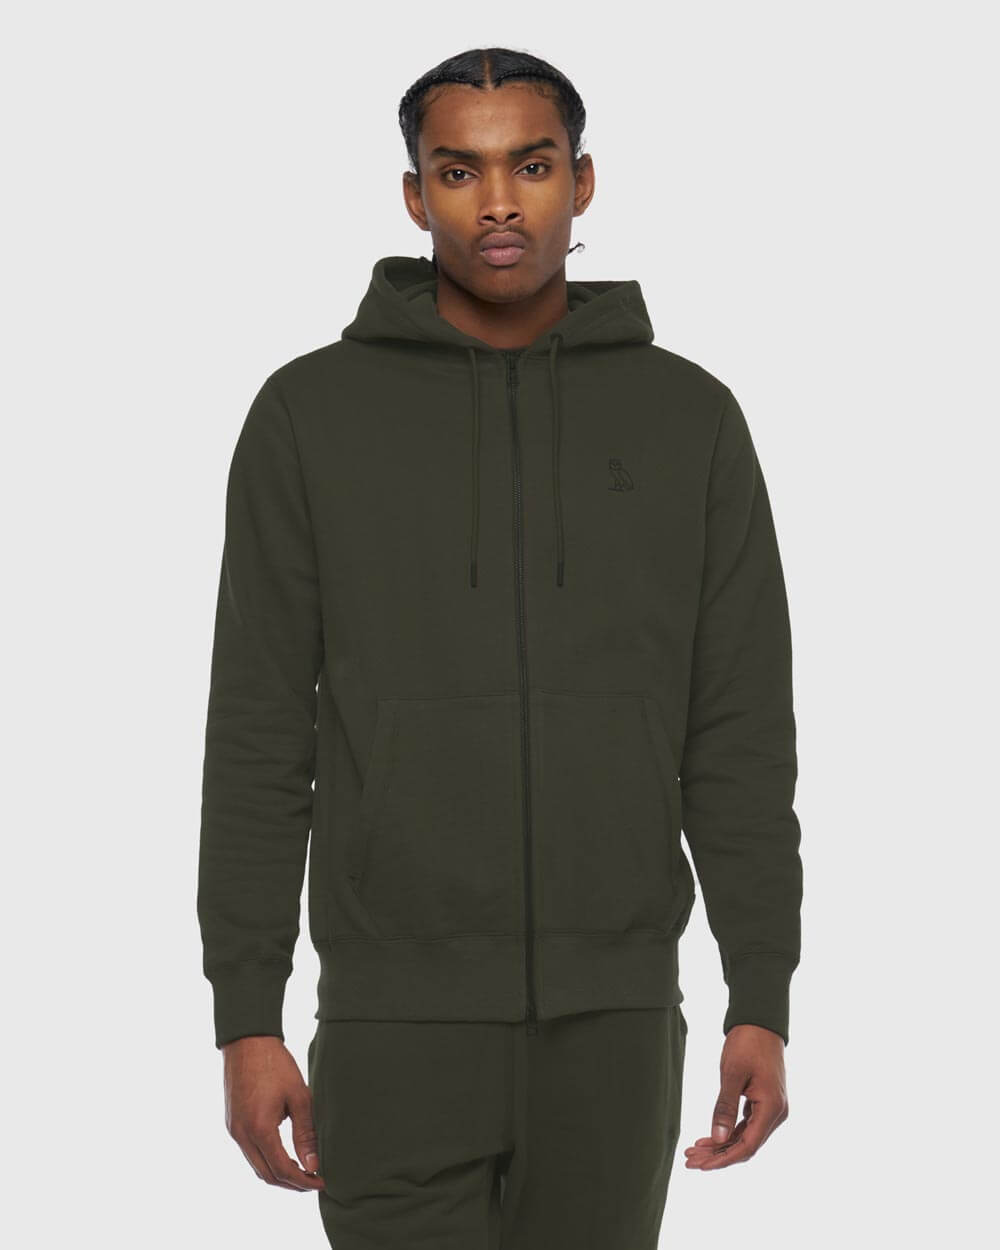 MID-WEIGHT FRENCH TERRY ZIP HOODIE - STONE GREEN